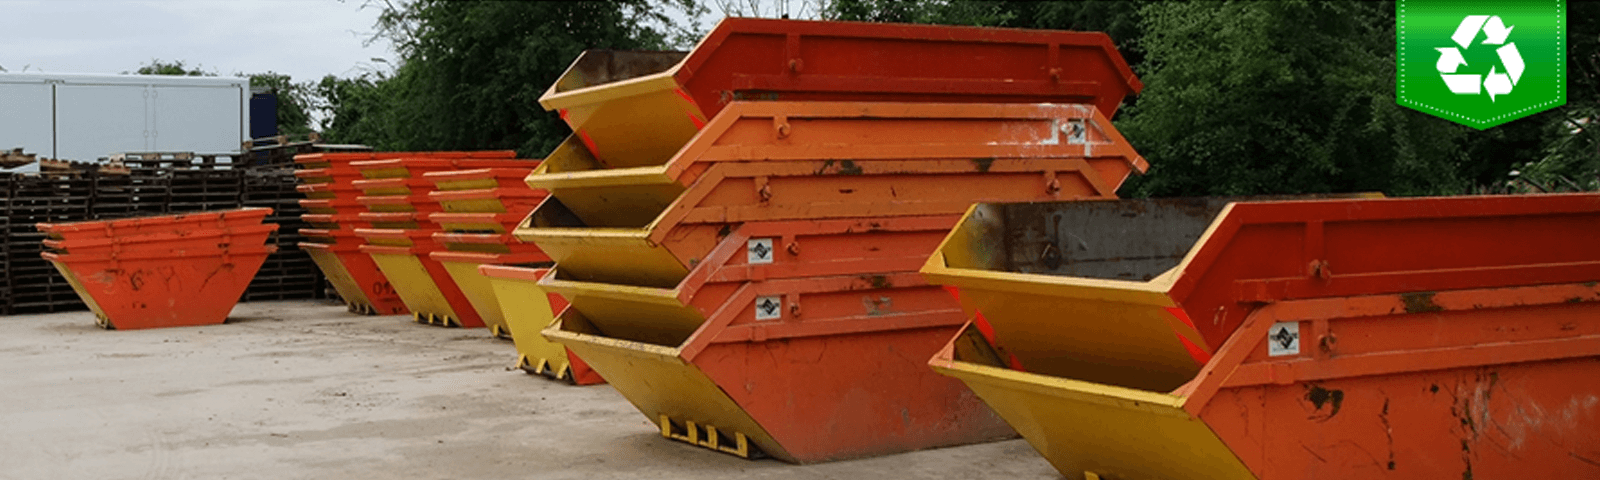 Sutton-Coldfield-stacked-up-skip